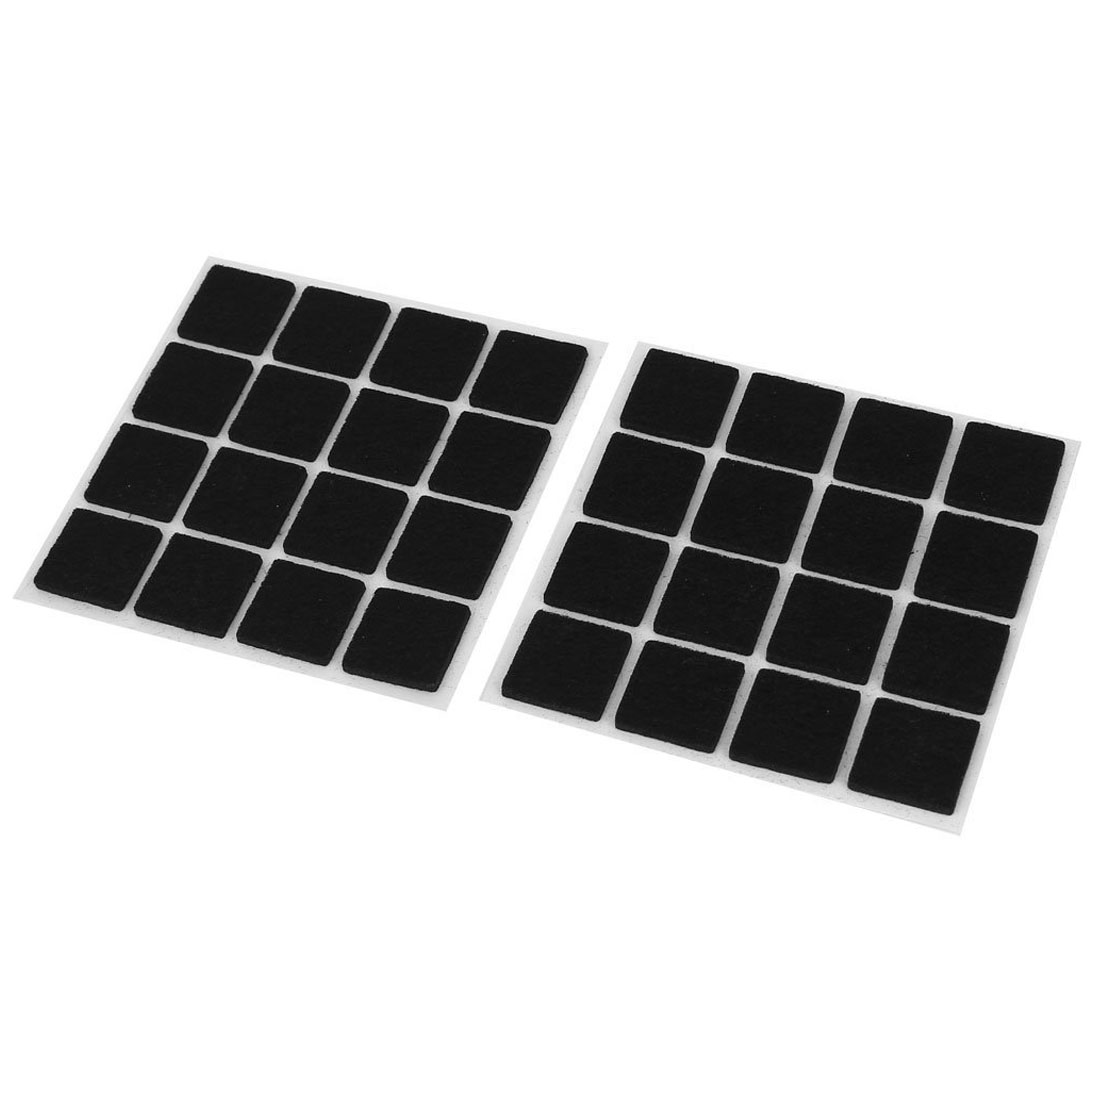 Durable Self Adhesive Floor Protectors Furniture Felt Square Pads 32pcsDurable Self Adhesive Floor Protectors Furniture Felt Square Pads 32pcs